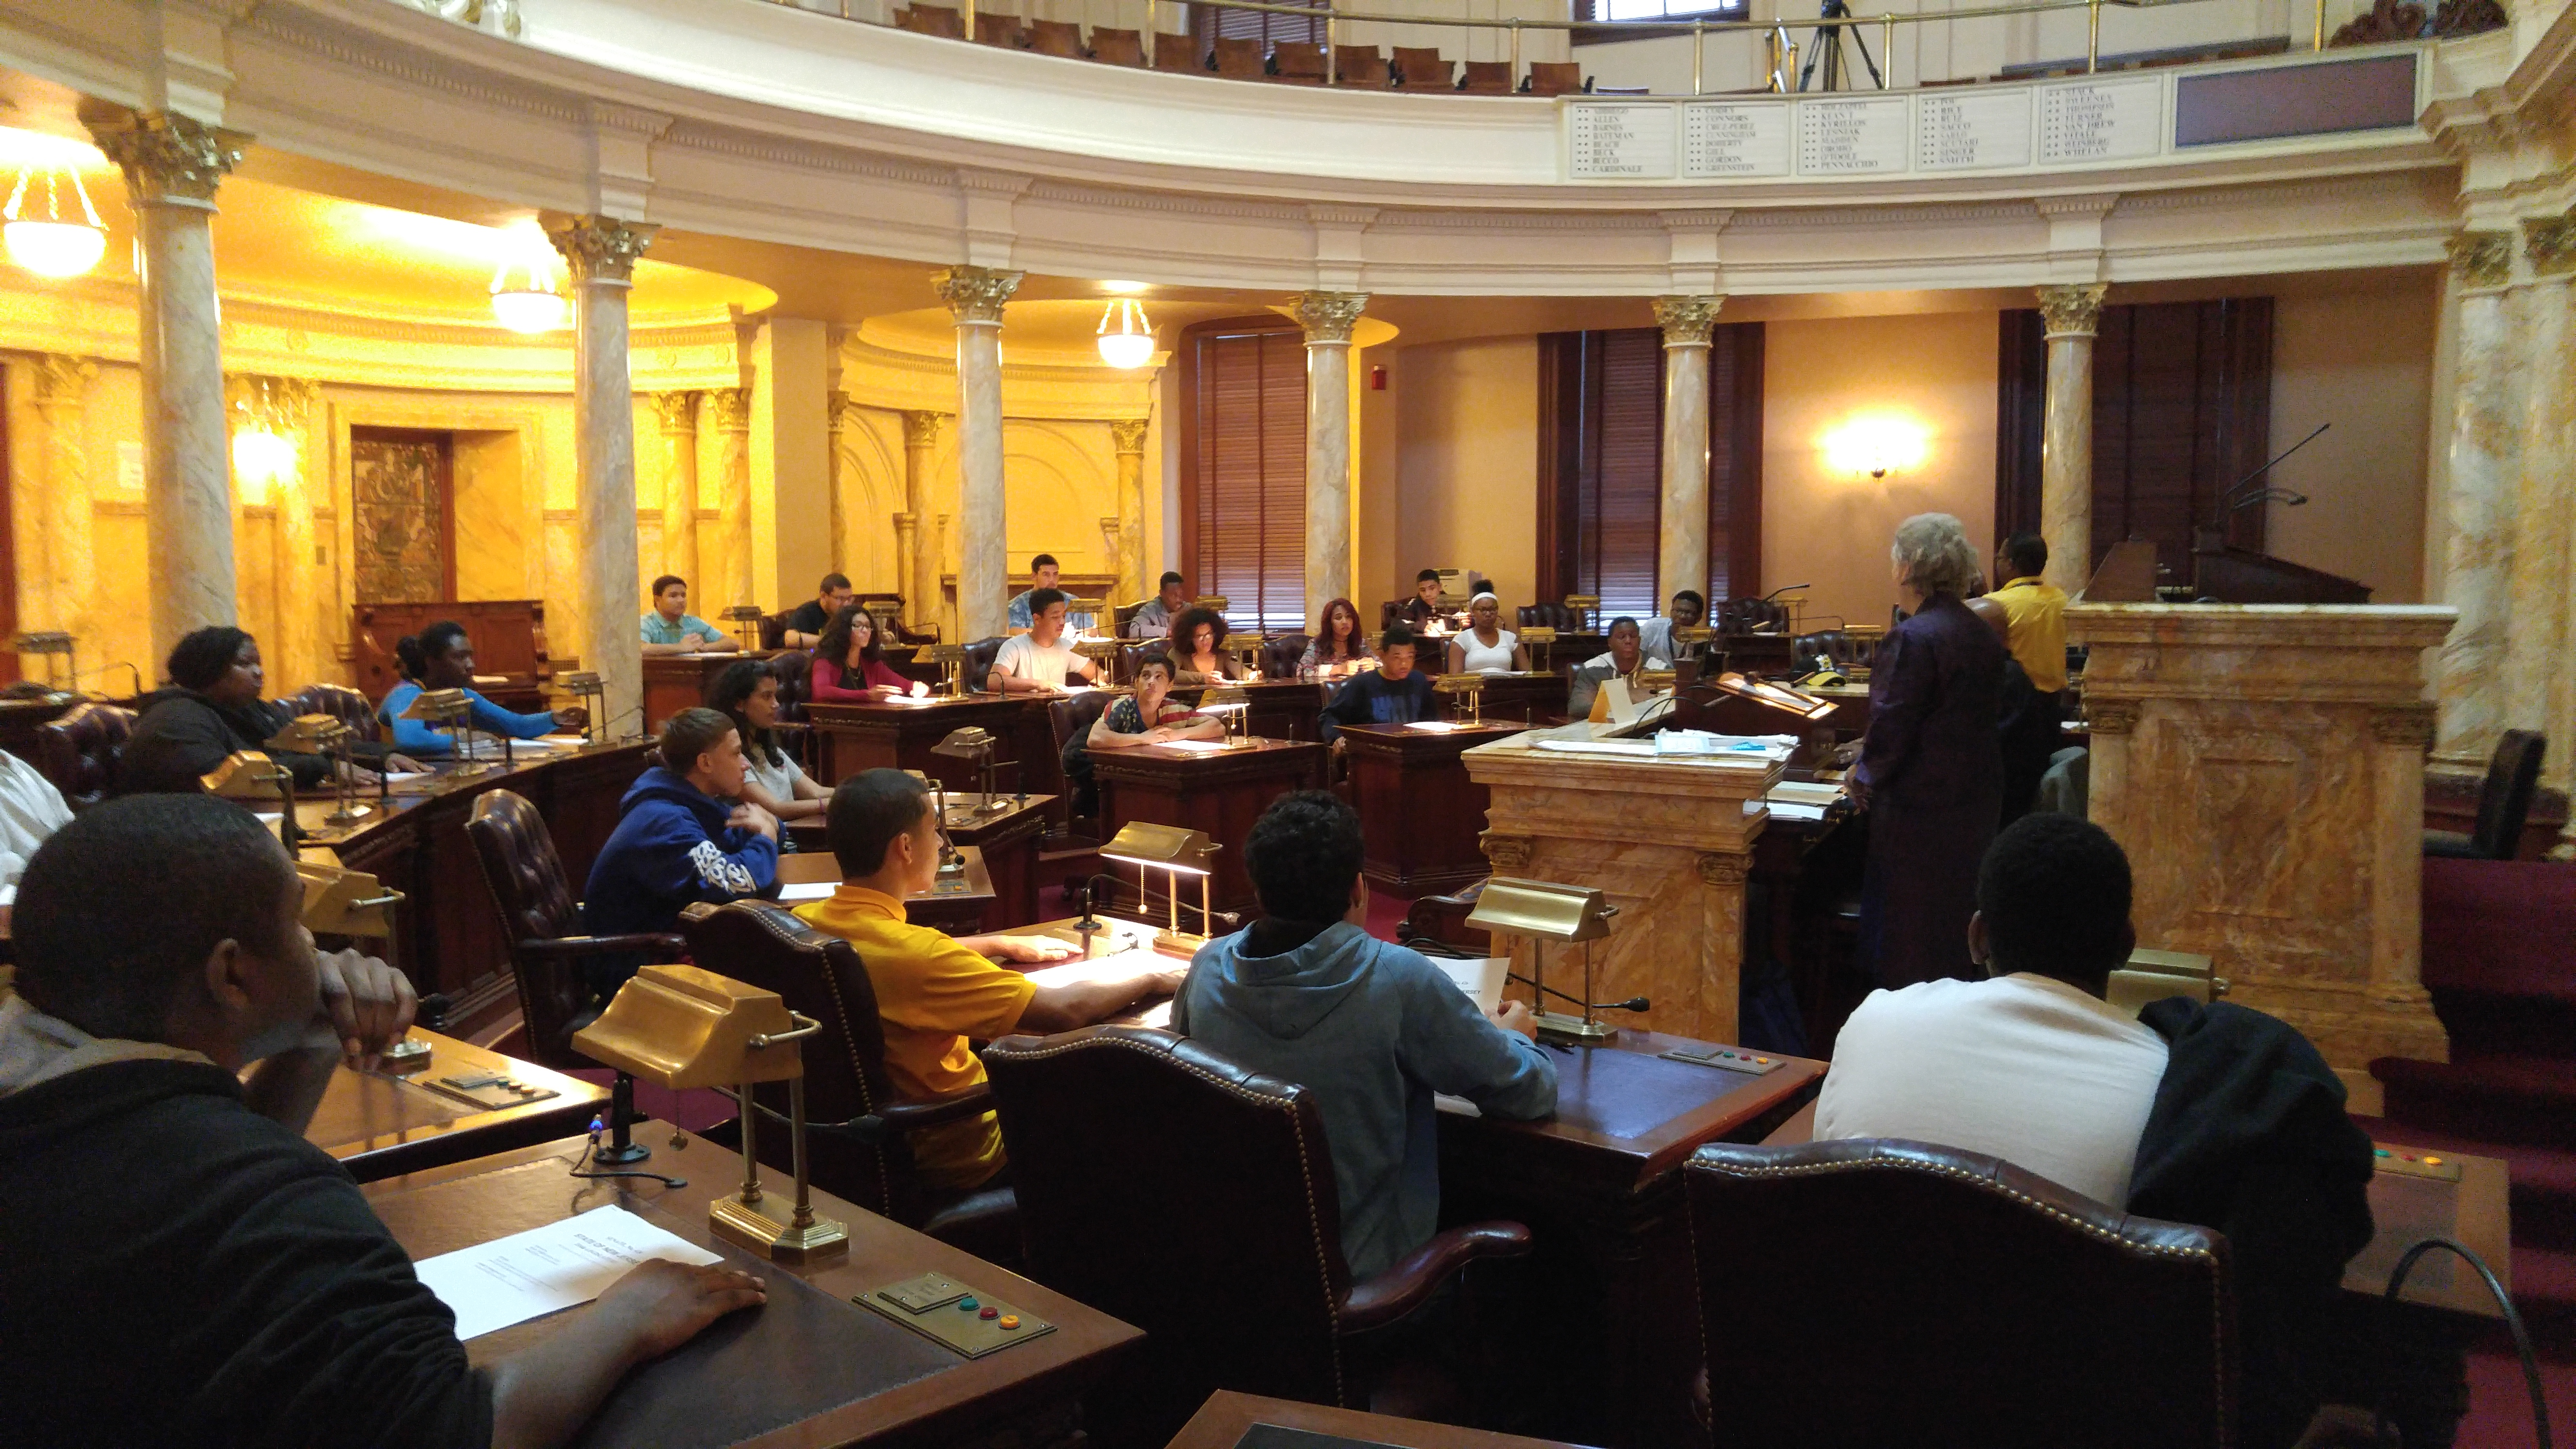 A group of students in the State House in Trenton